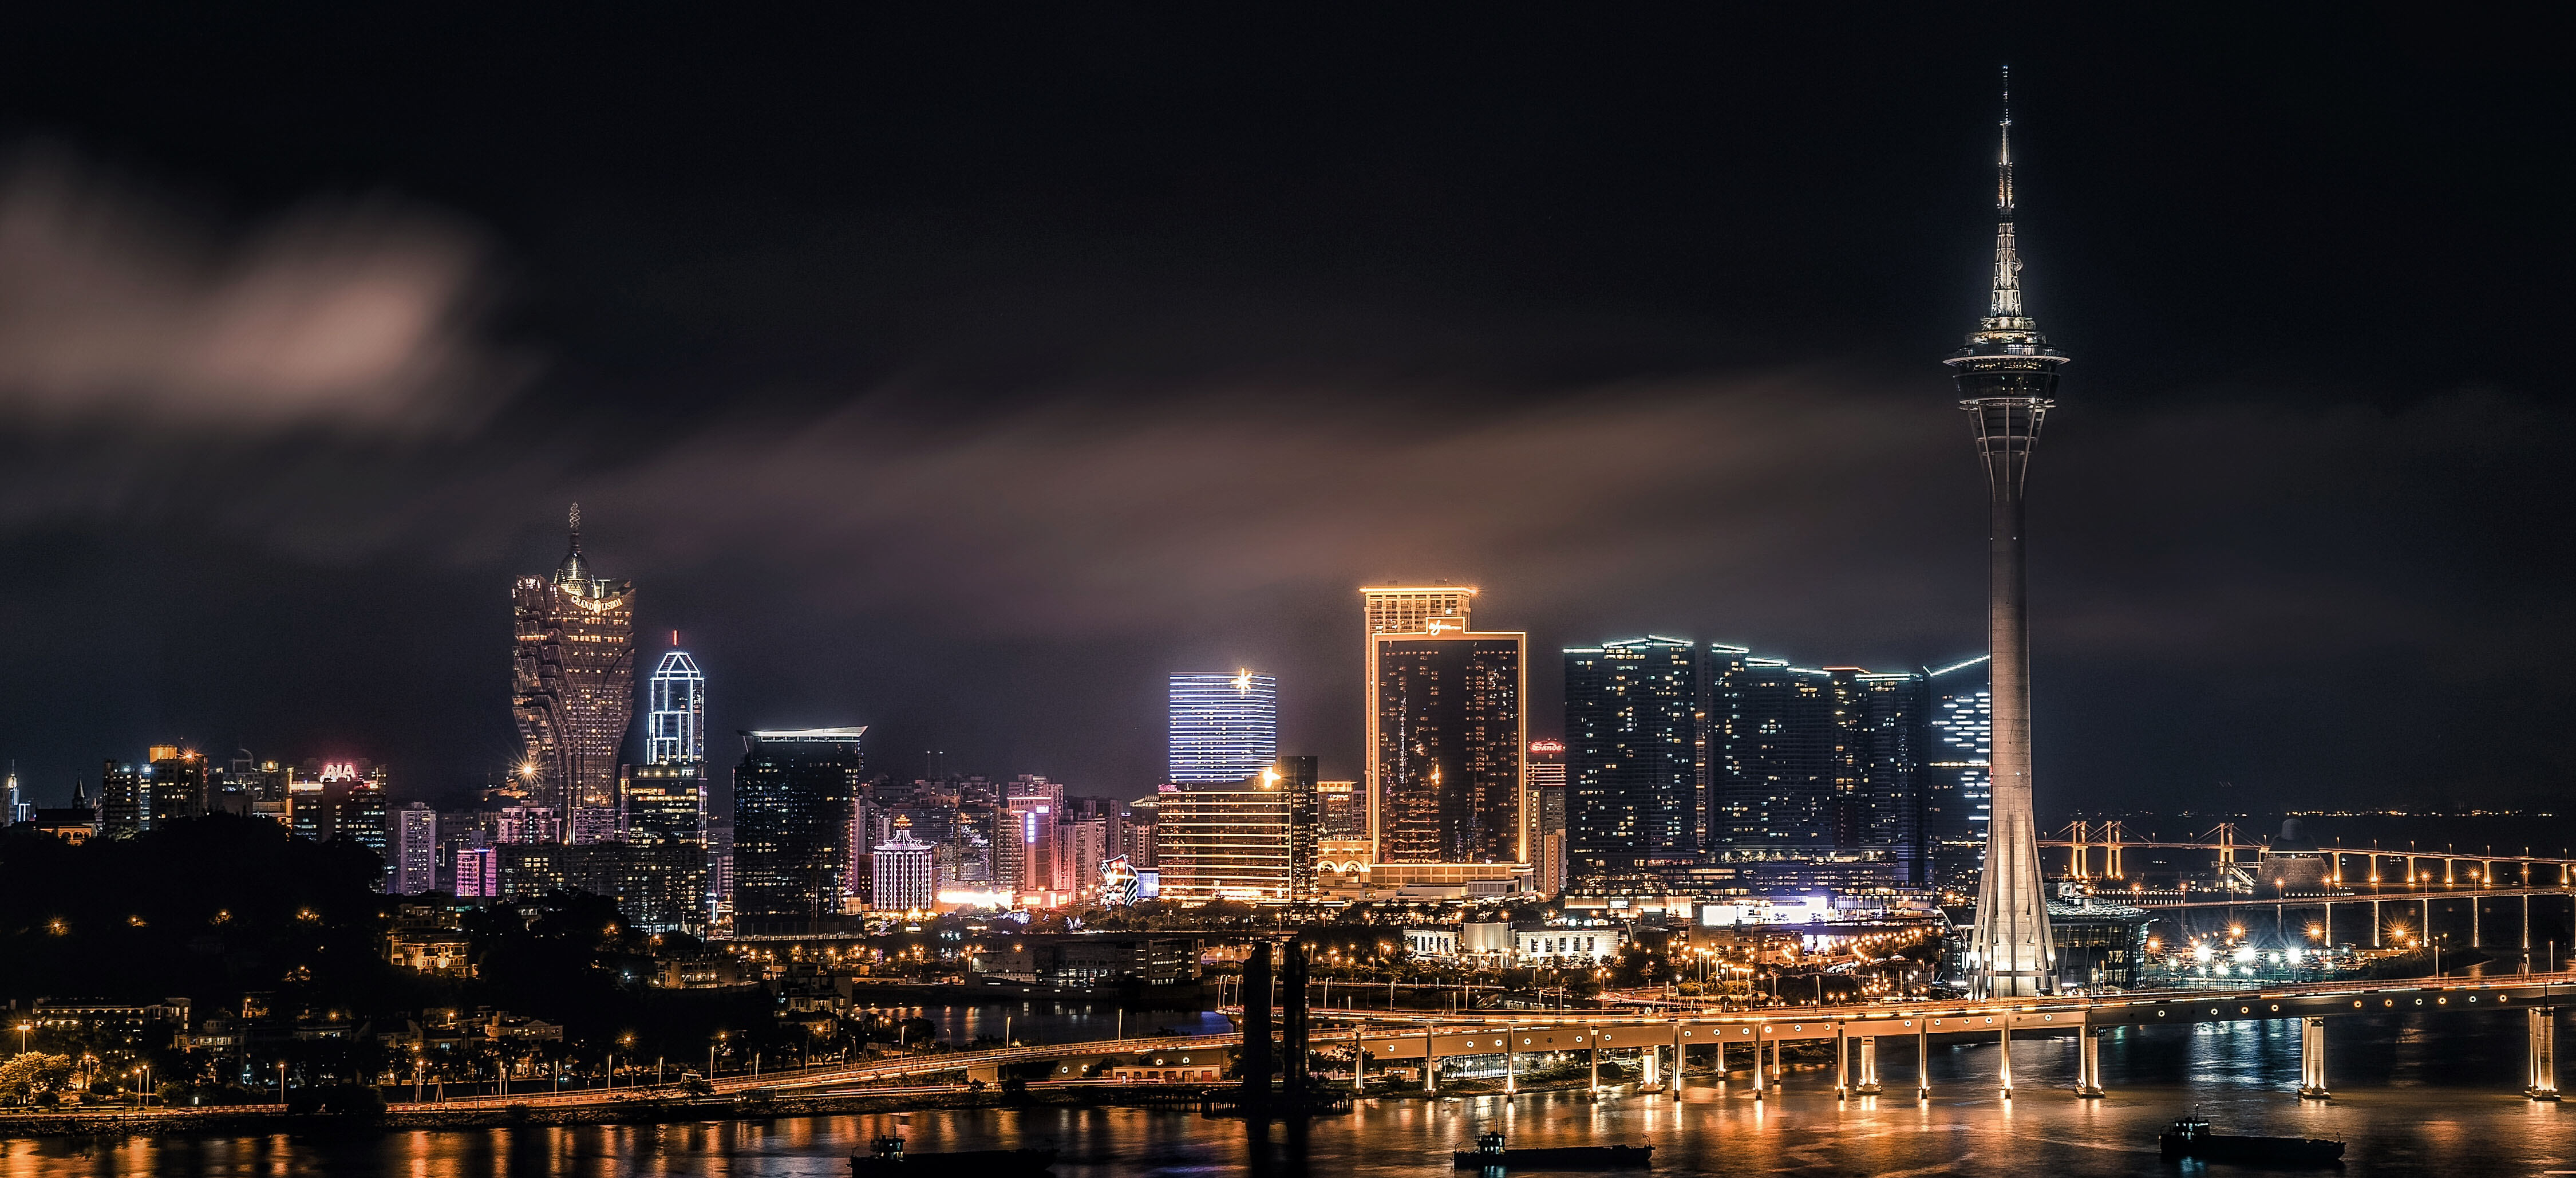 Macau's Must-See Attractions